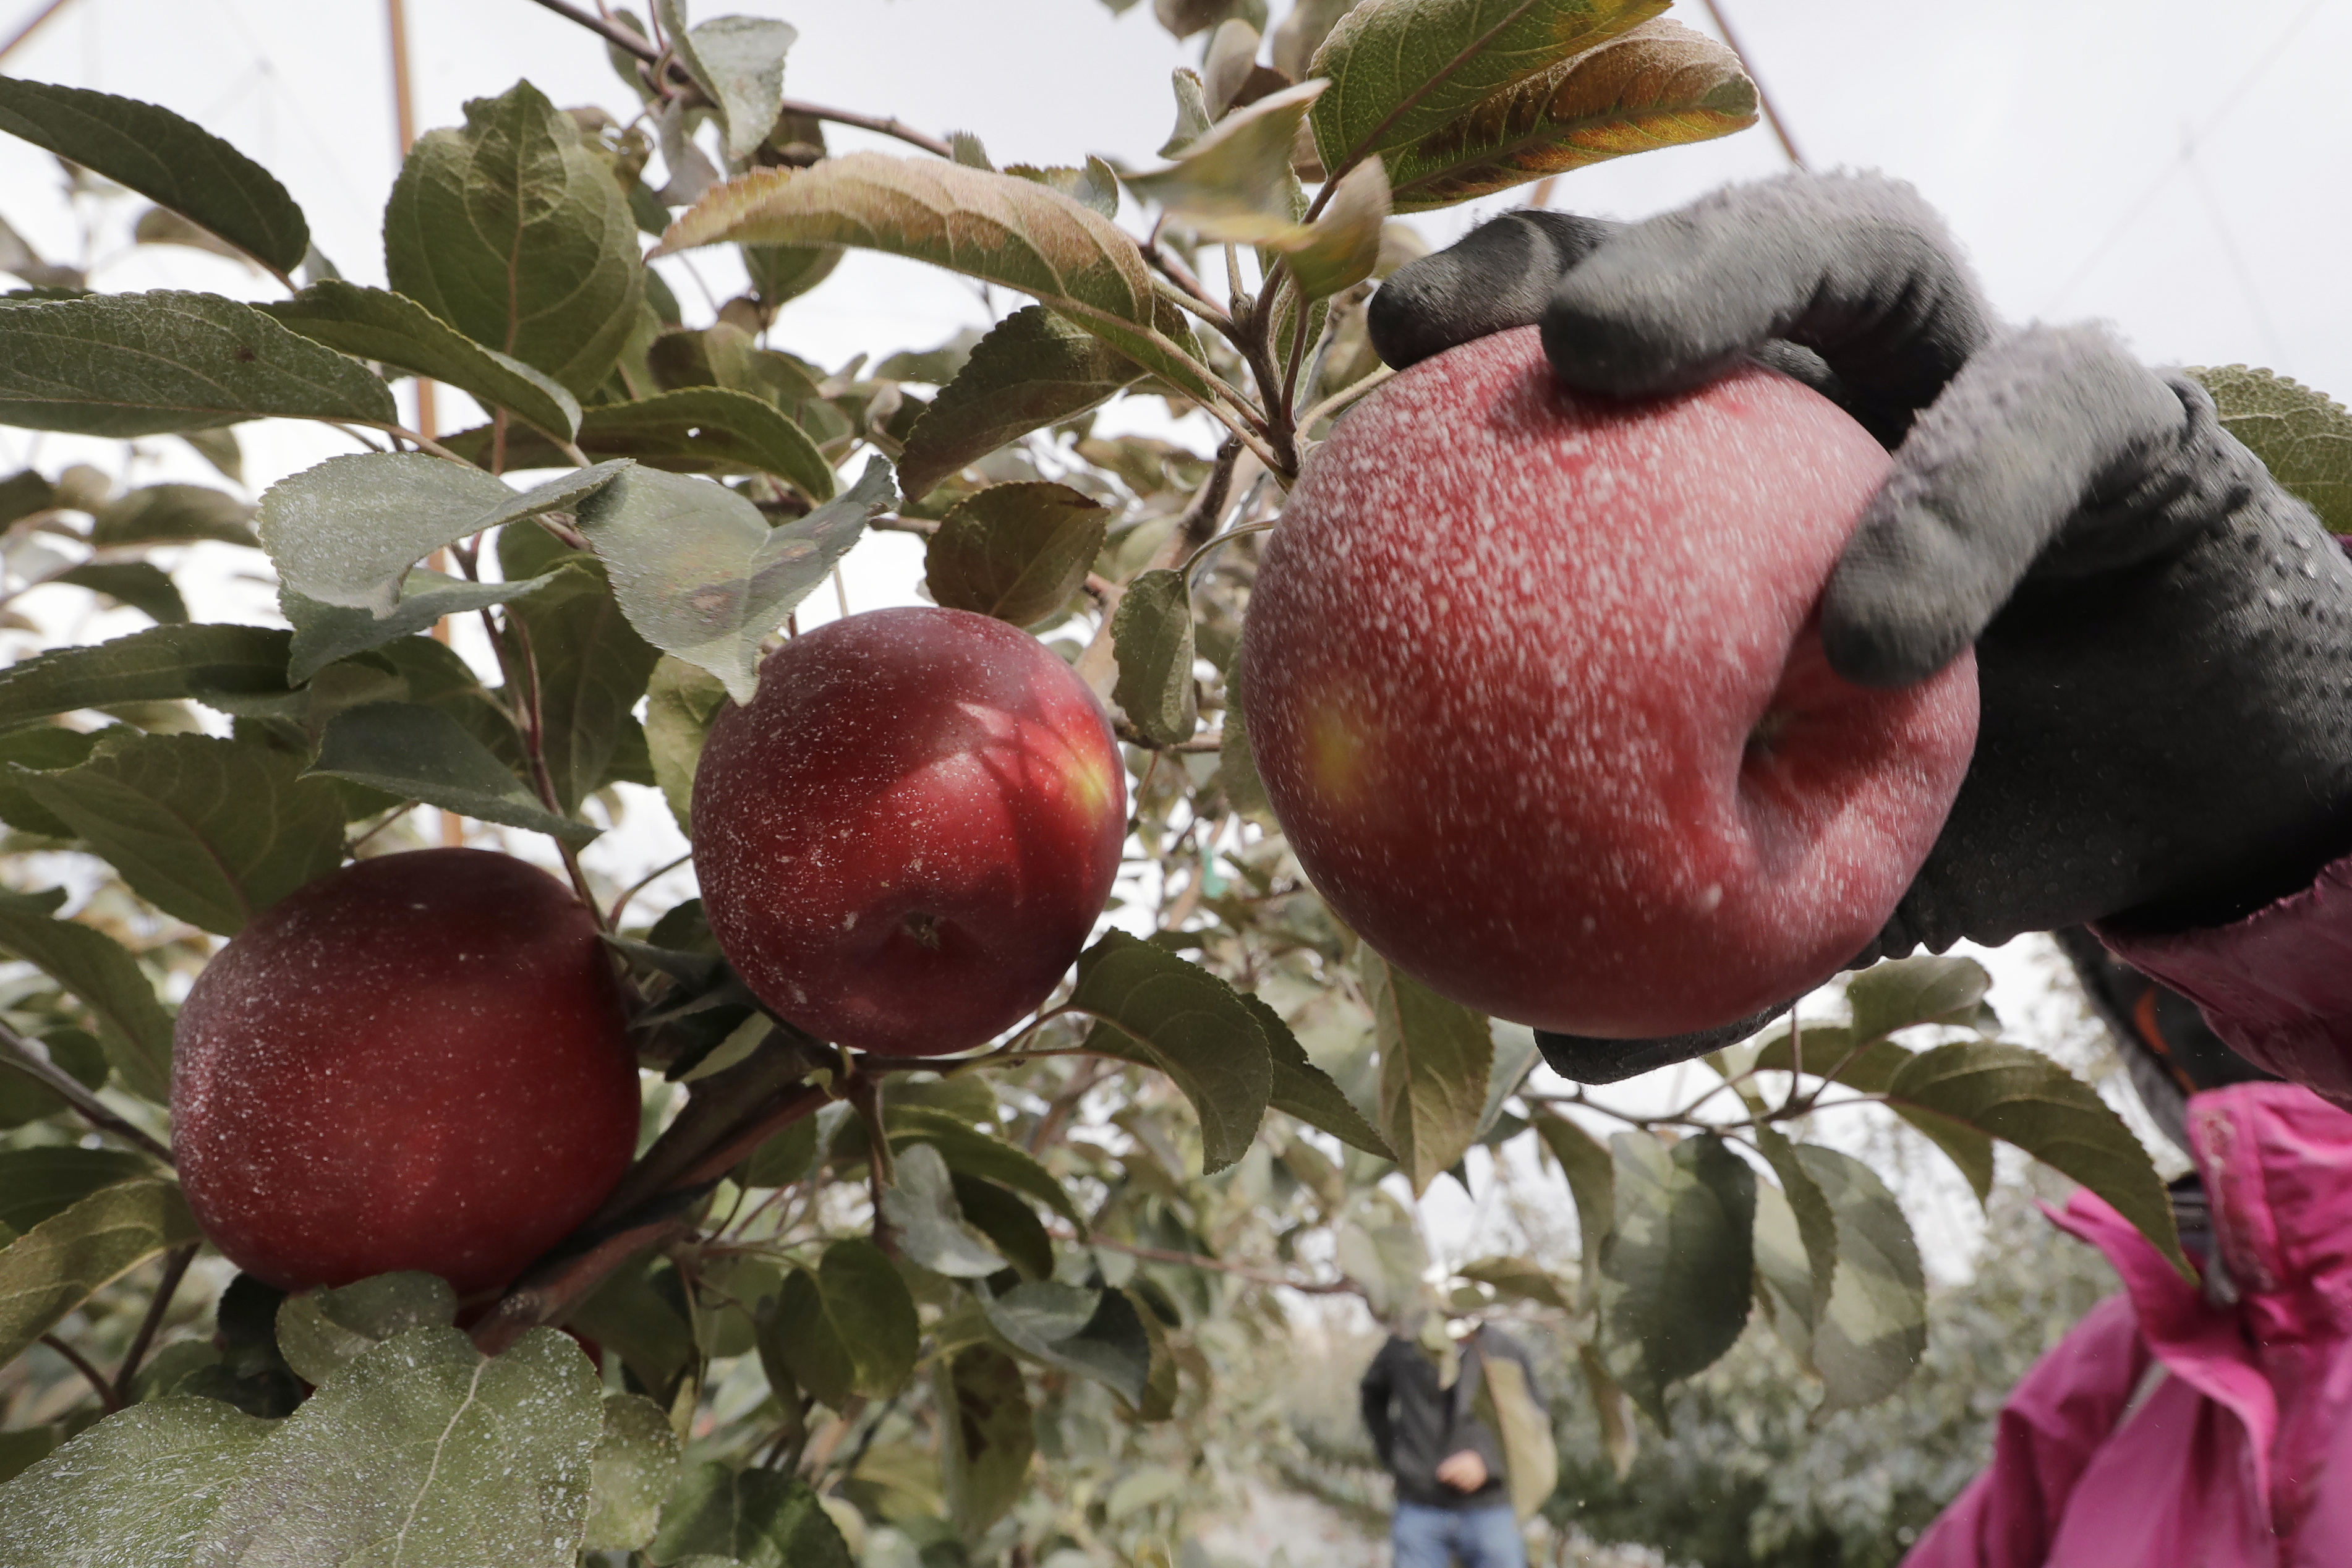 Already, growers have planted 12 million Cosmic Crisp apple trees, a sign of confidence in the new variety.